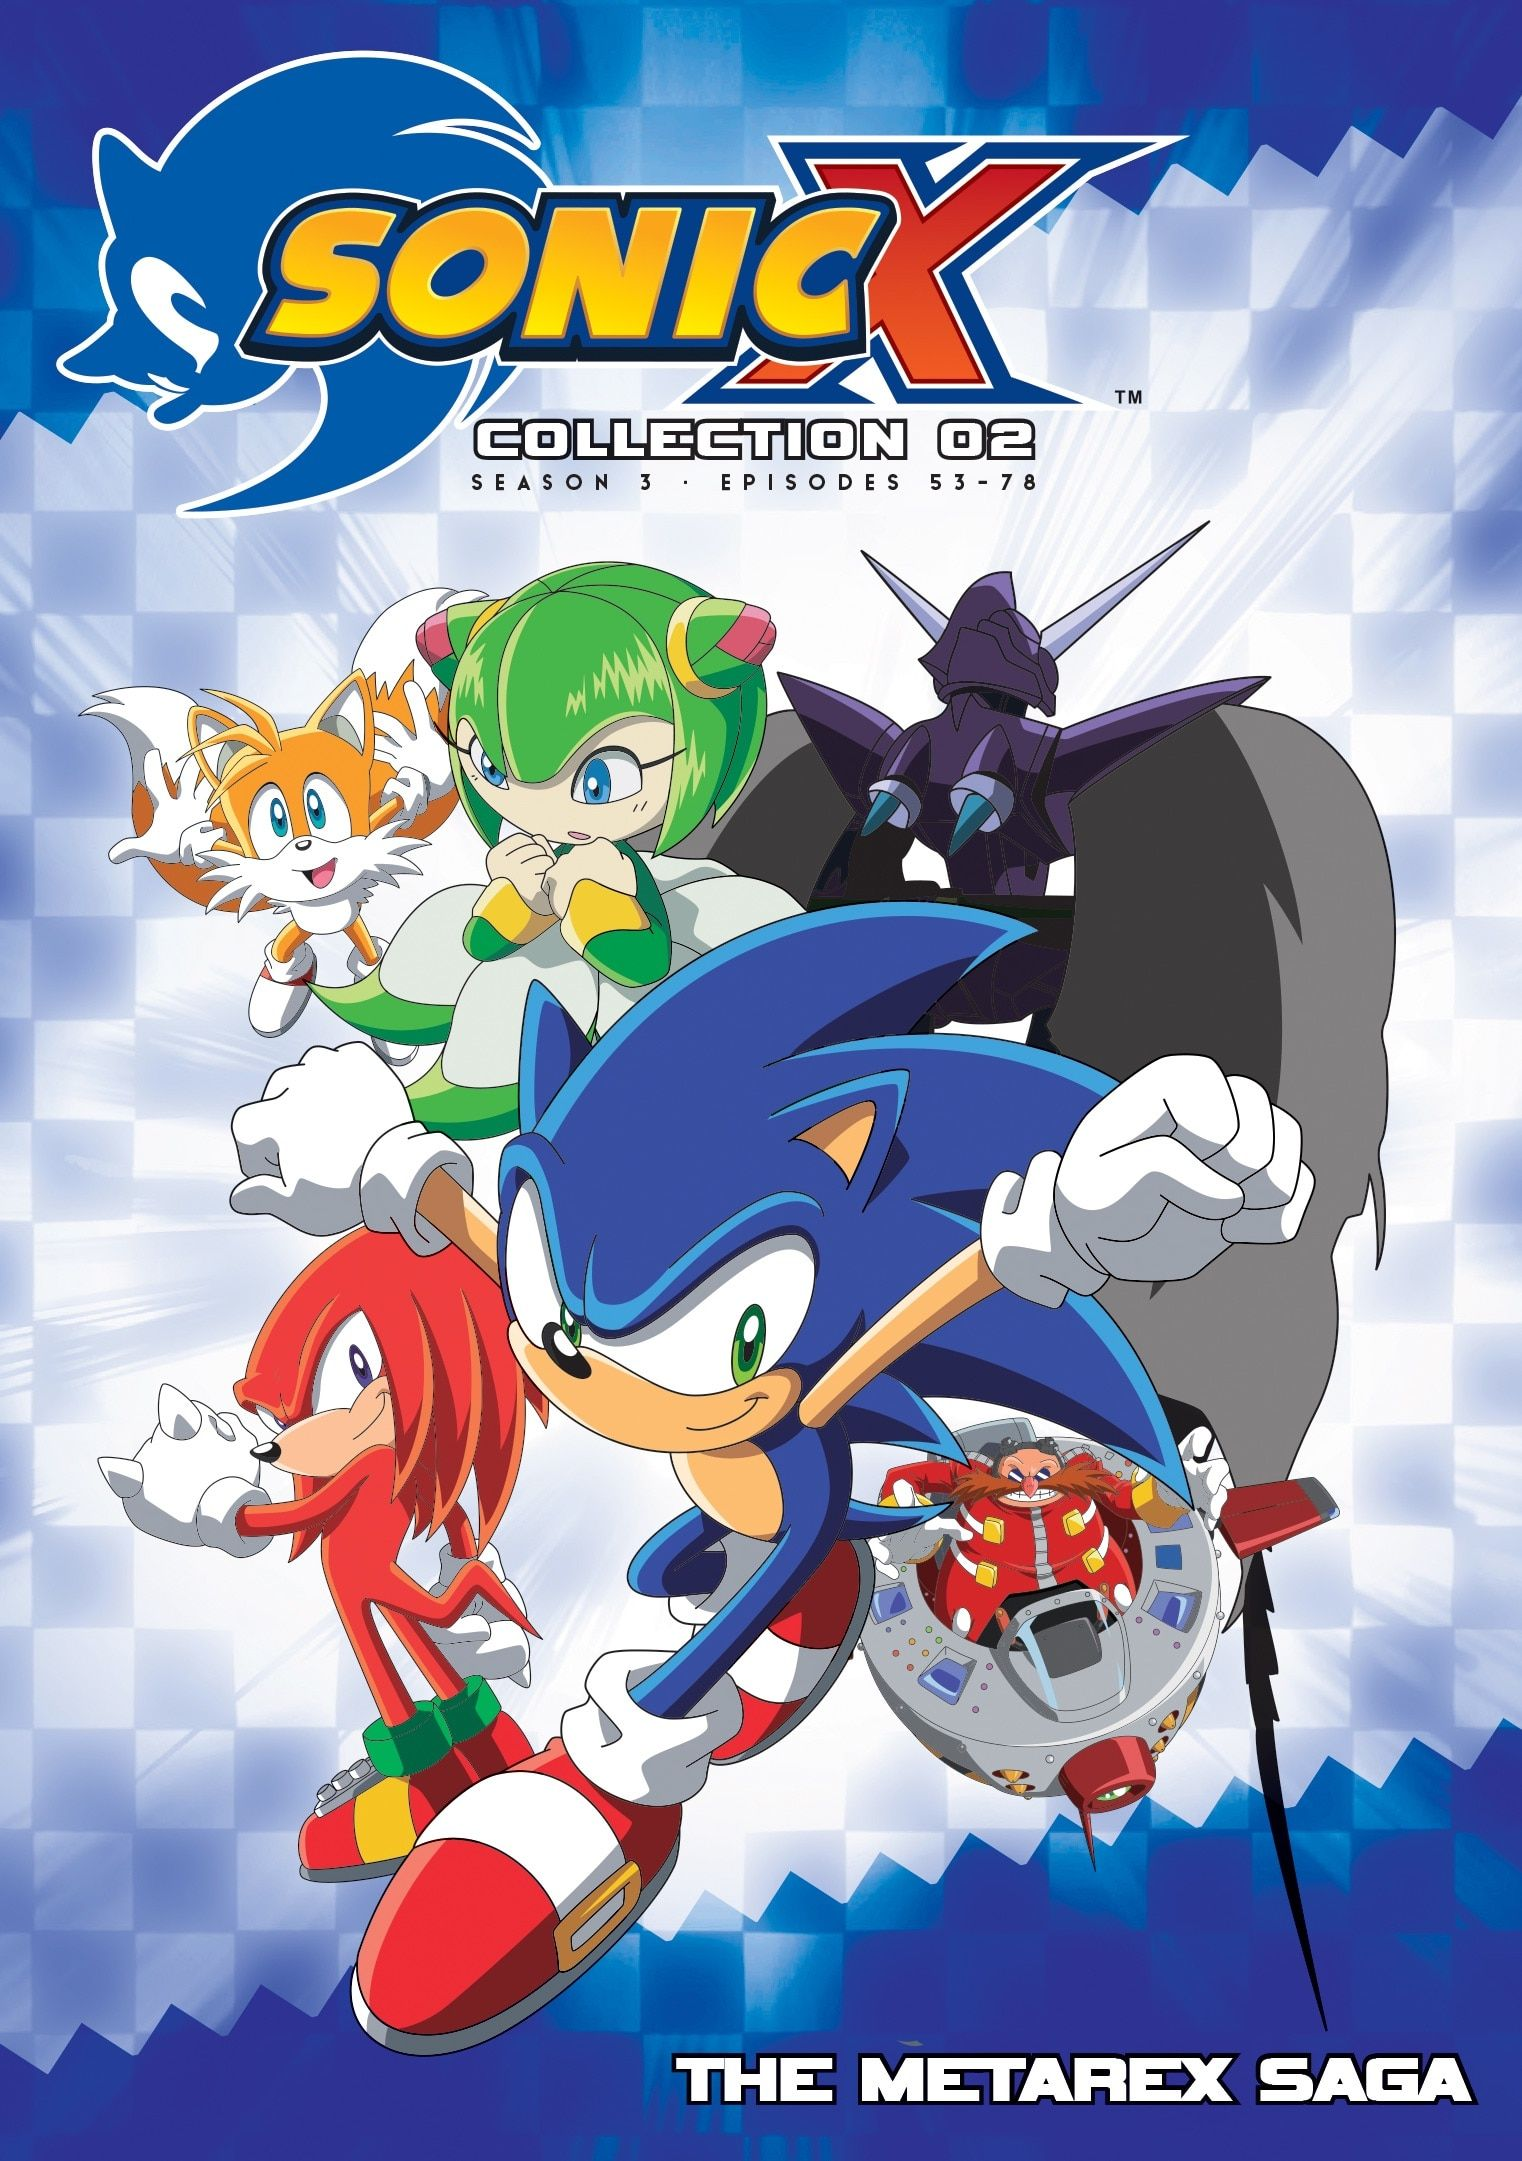 Sonic x screenshots sonic the hedgehog image sonic x episode 64 a - Sonic X Complete Season 3 Dvd